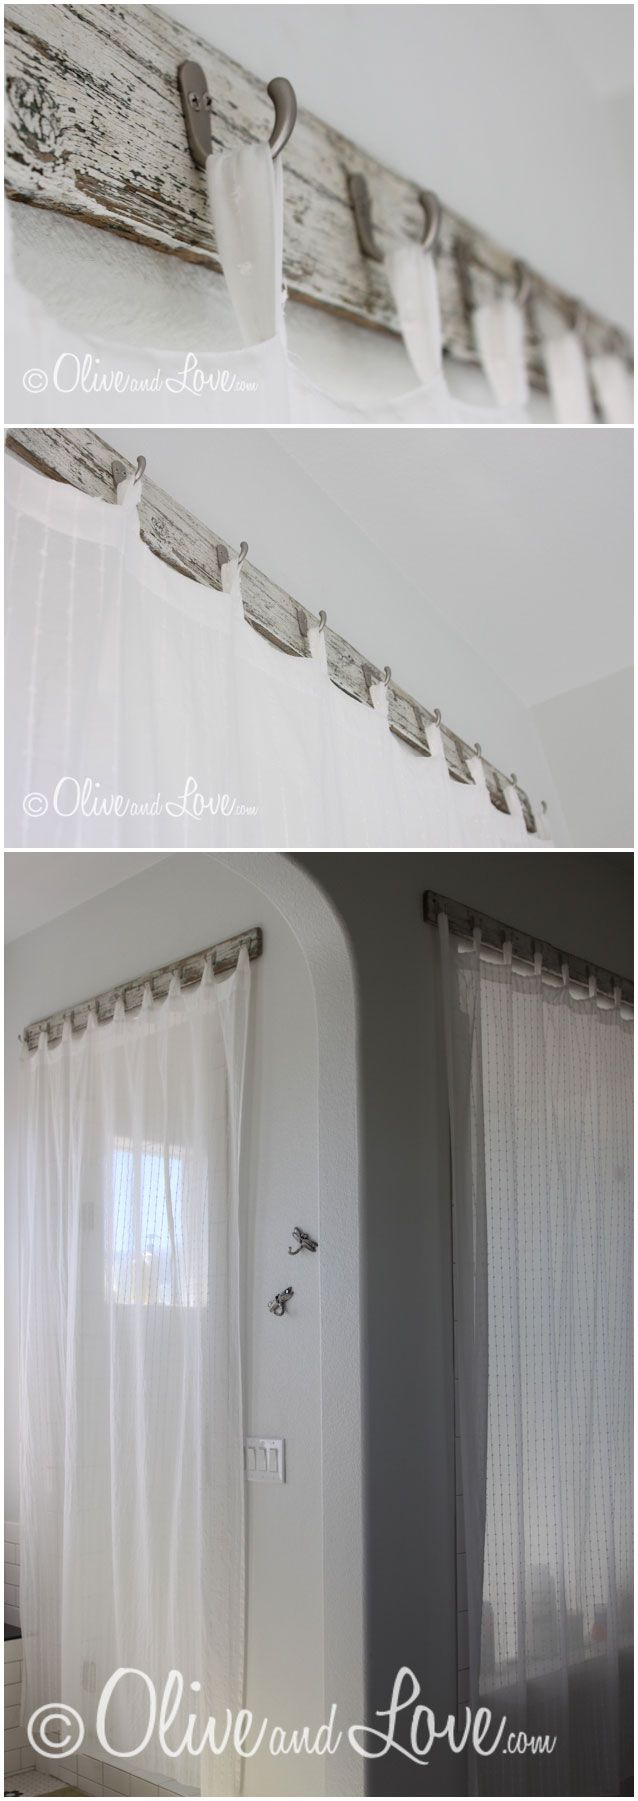 Unique curtain hanging ideas - Curtains Hang Curtains The New Way Scrap Wood From An Old Bench